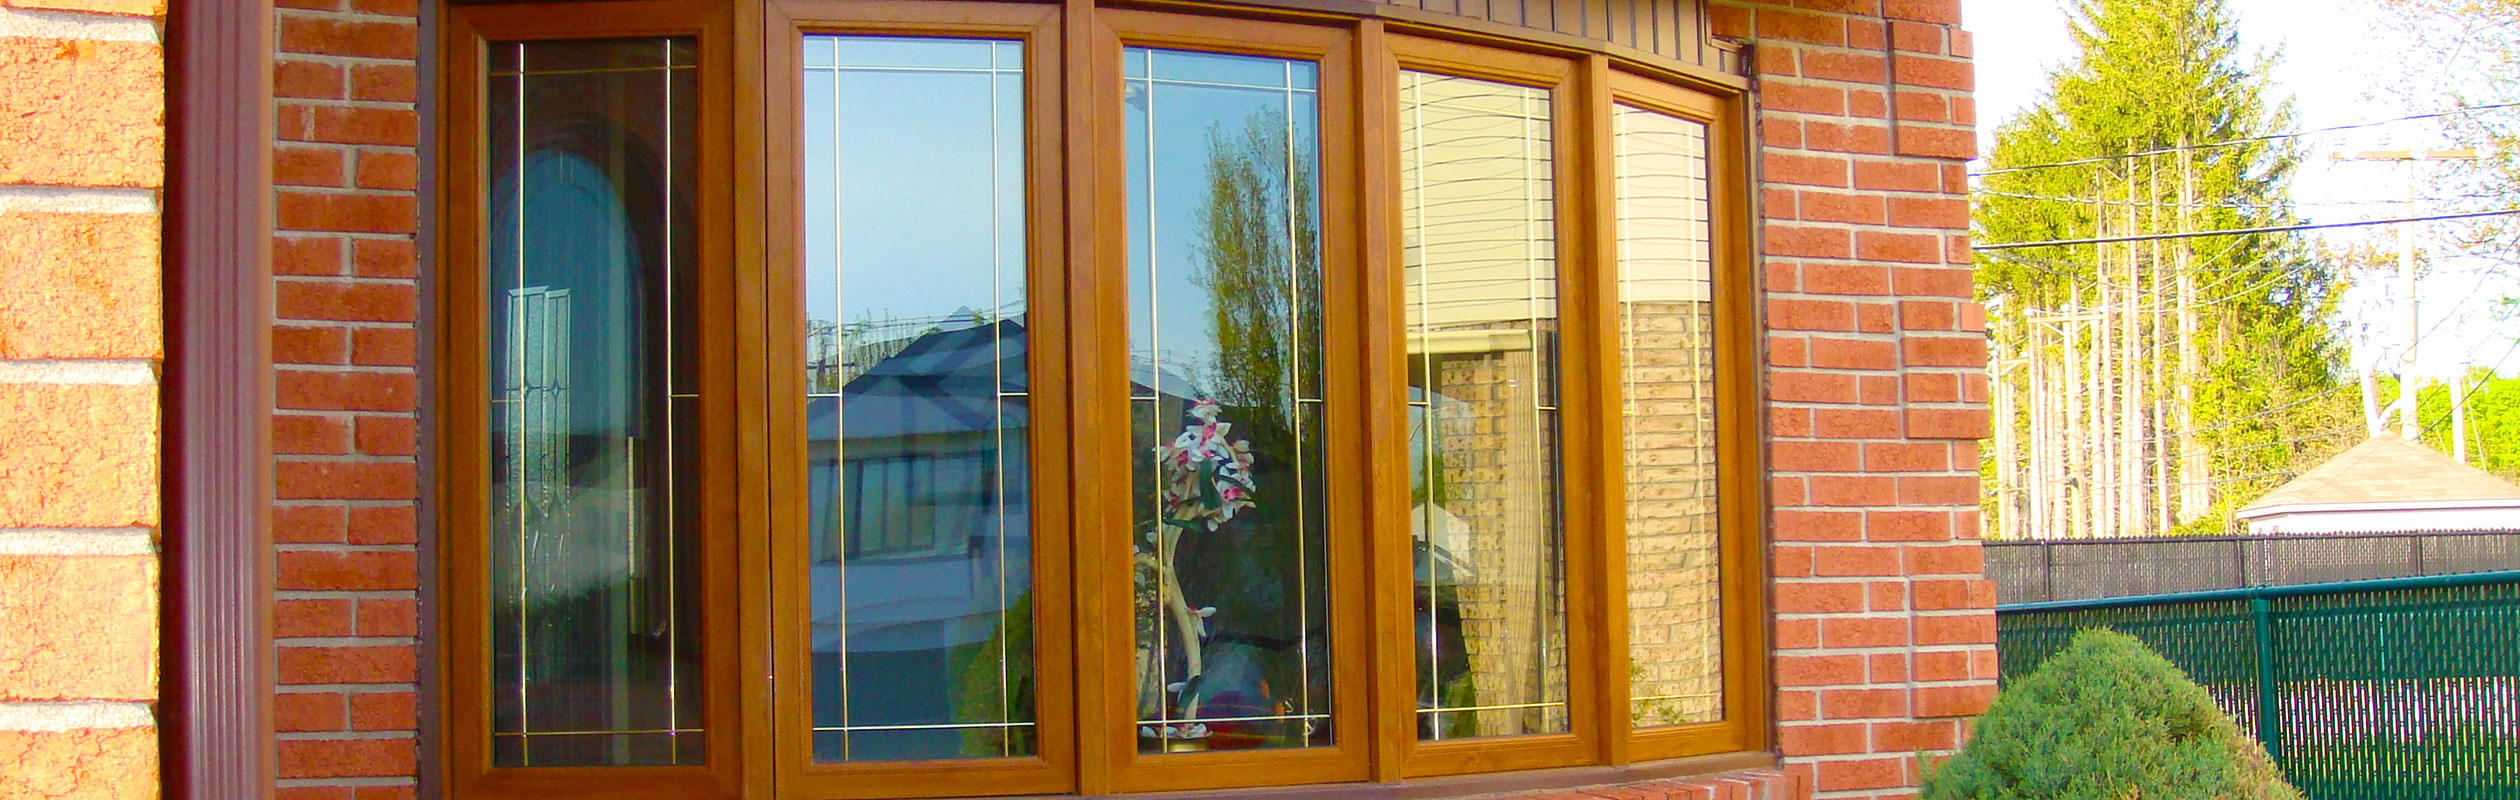 Bay or bow window auroral doors and windows for Fenetre baie window prix